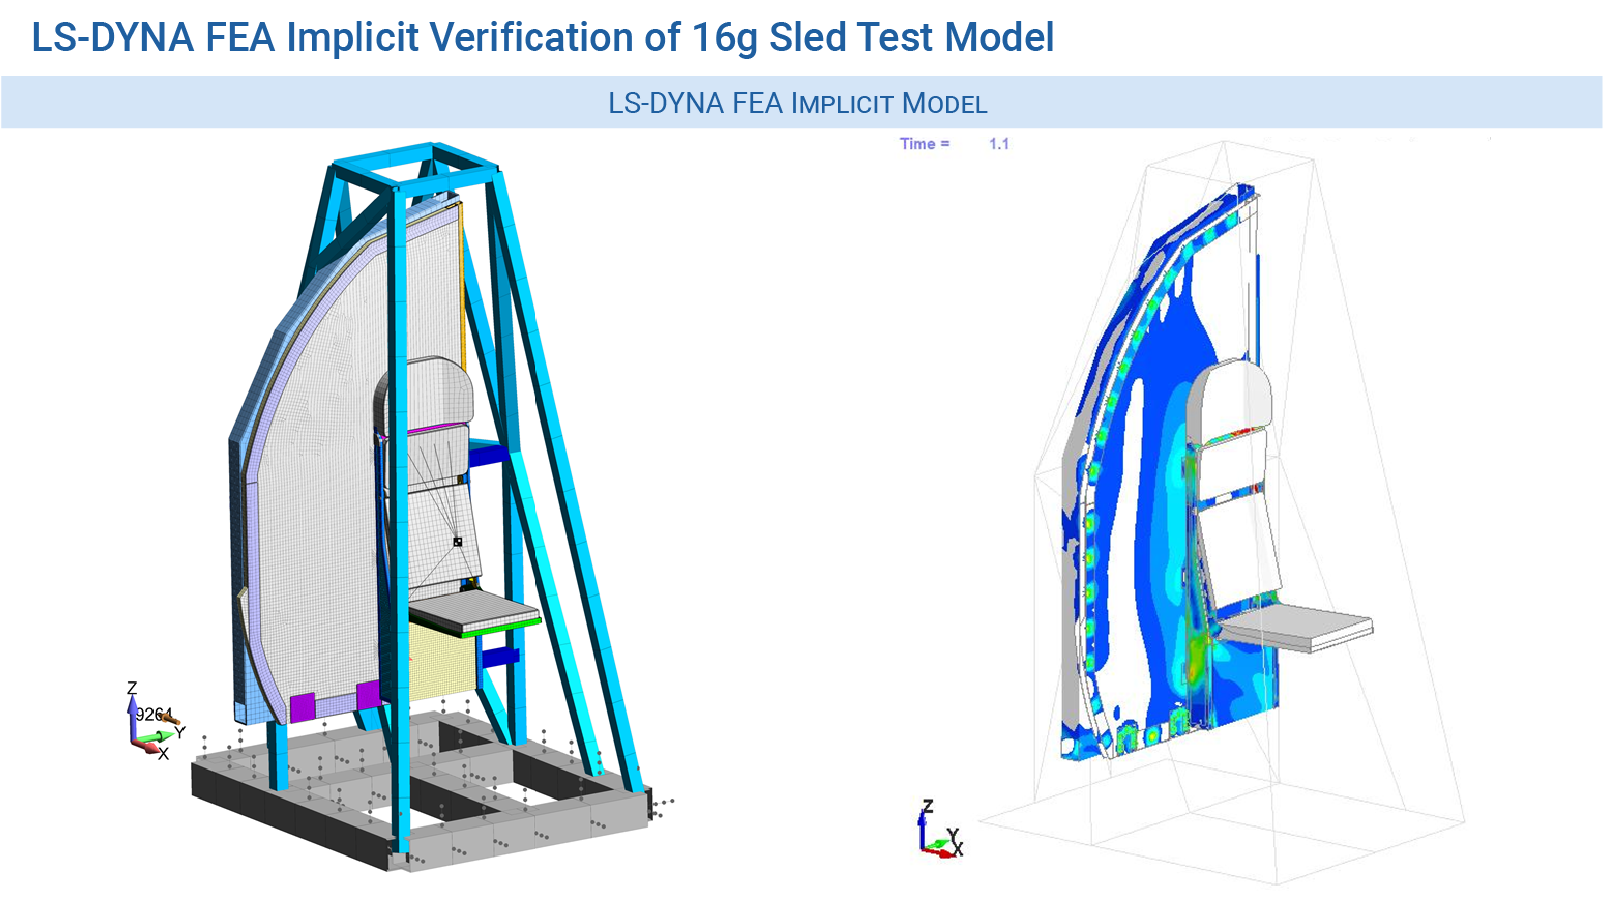 FEA Consulting Services - Nonlinear FEA LS-DYNA Implicit Analysis of Aircraft Interiors